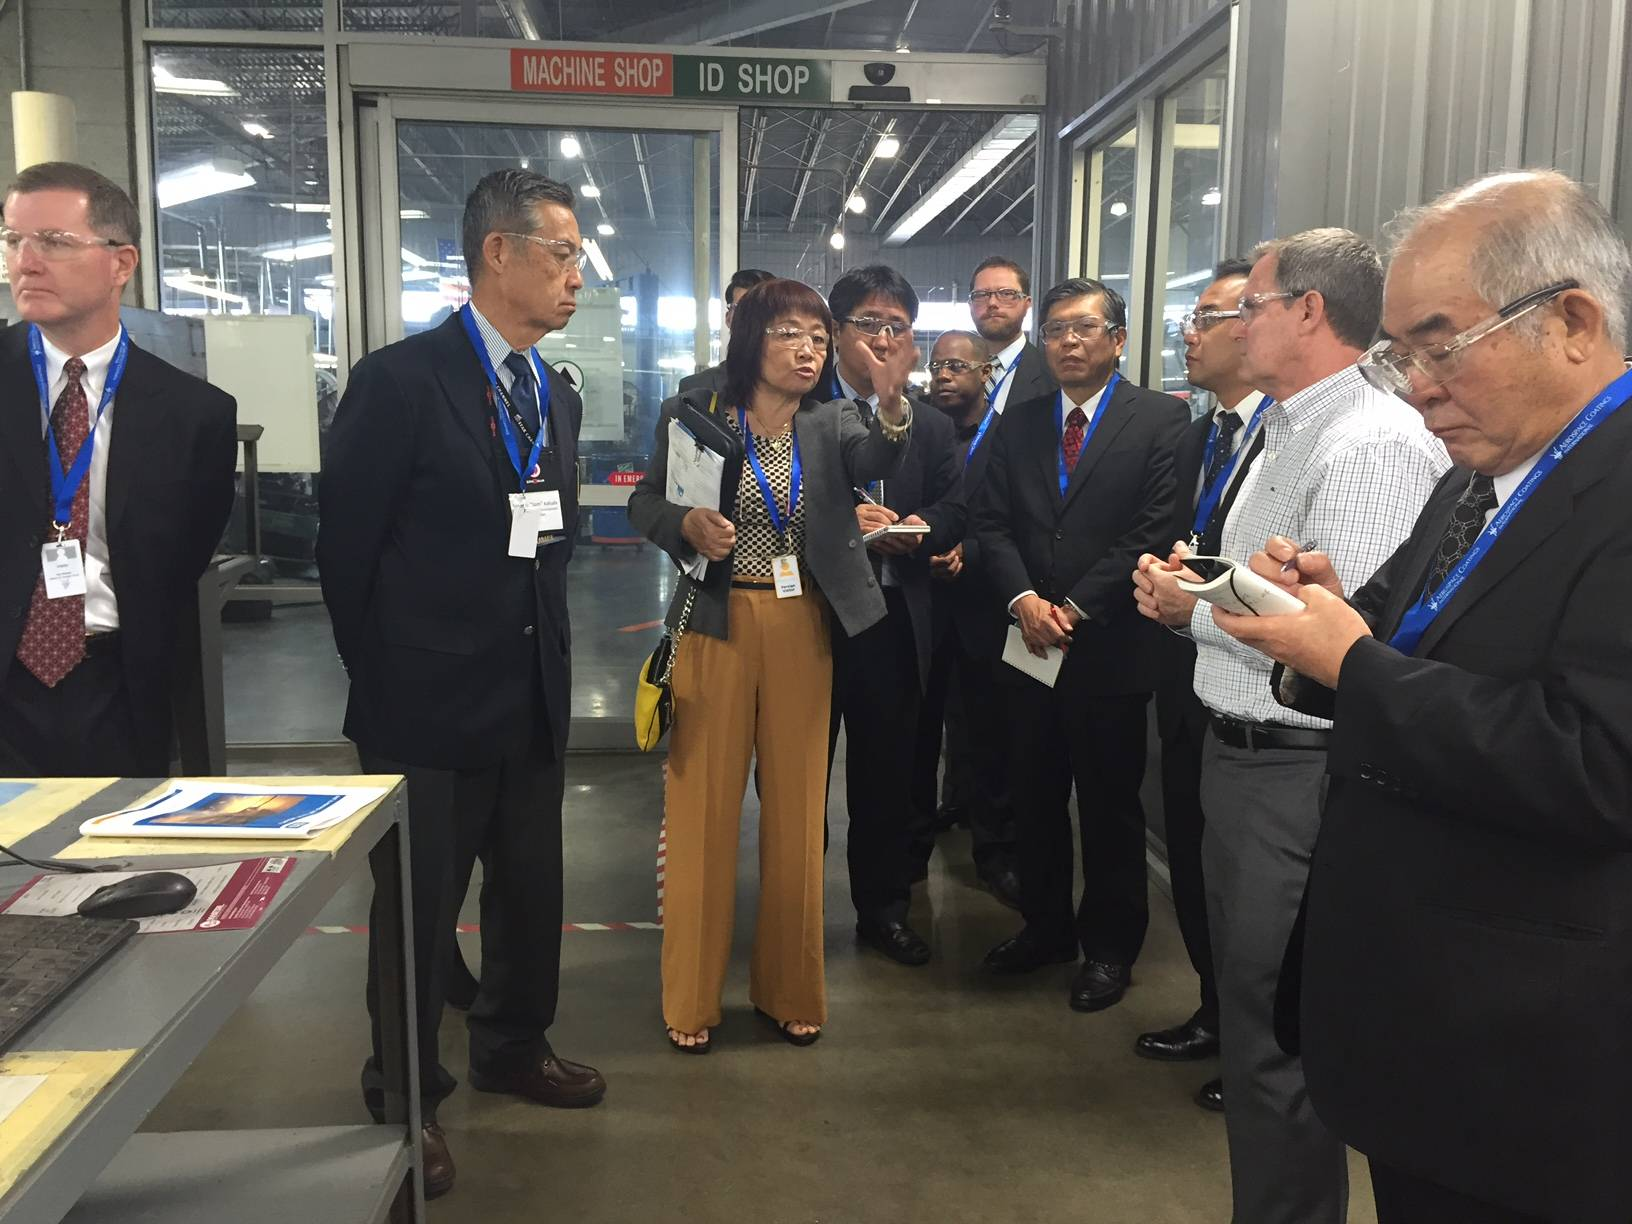 Alabama calhoun county eastaboga -  To Showcase Calhoun County And The Aerospace Industries Located In Our Community We Were Pleased To Welcome The Japanese Delegates To Northeast Alabama